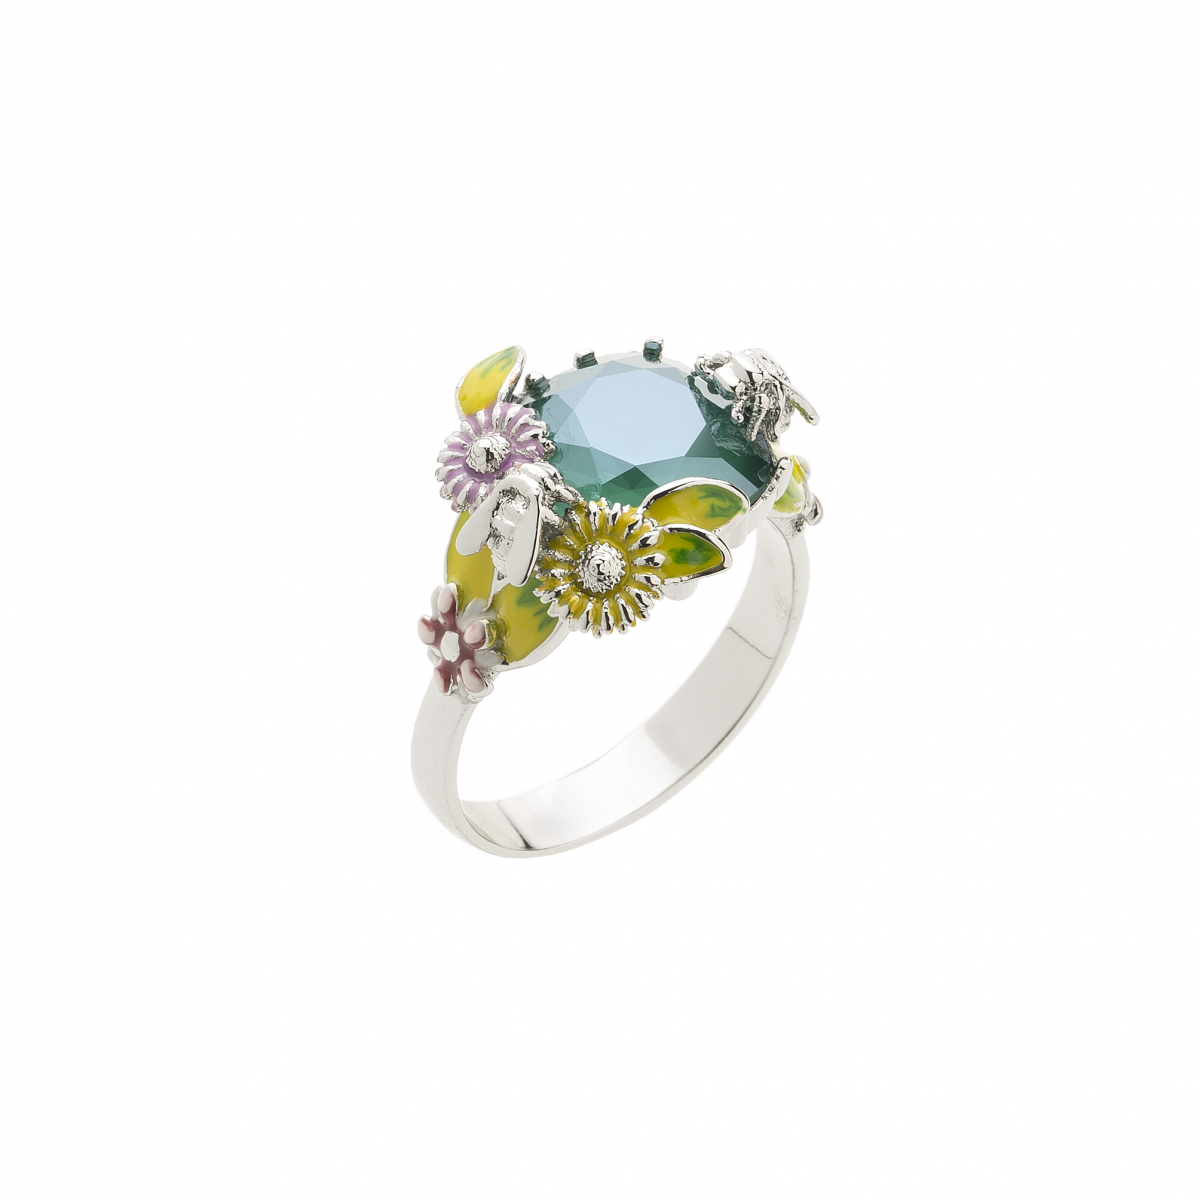 Scenes of Nature Ring - Teal - Medium Only